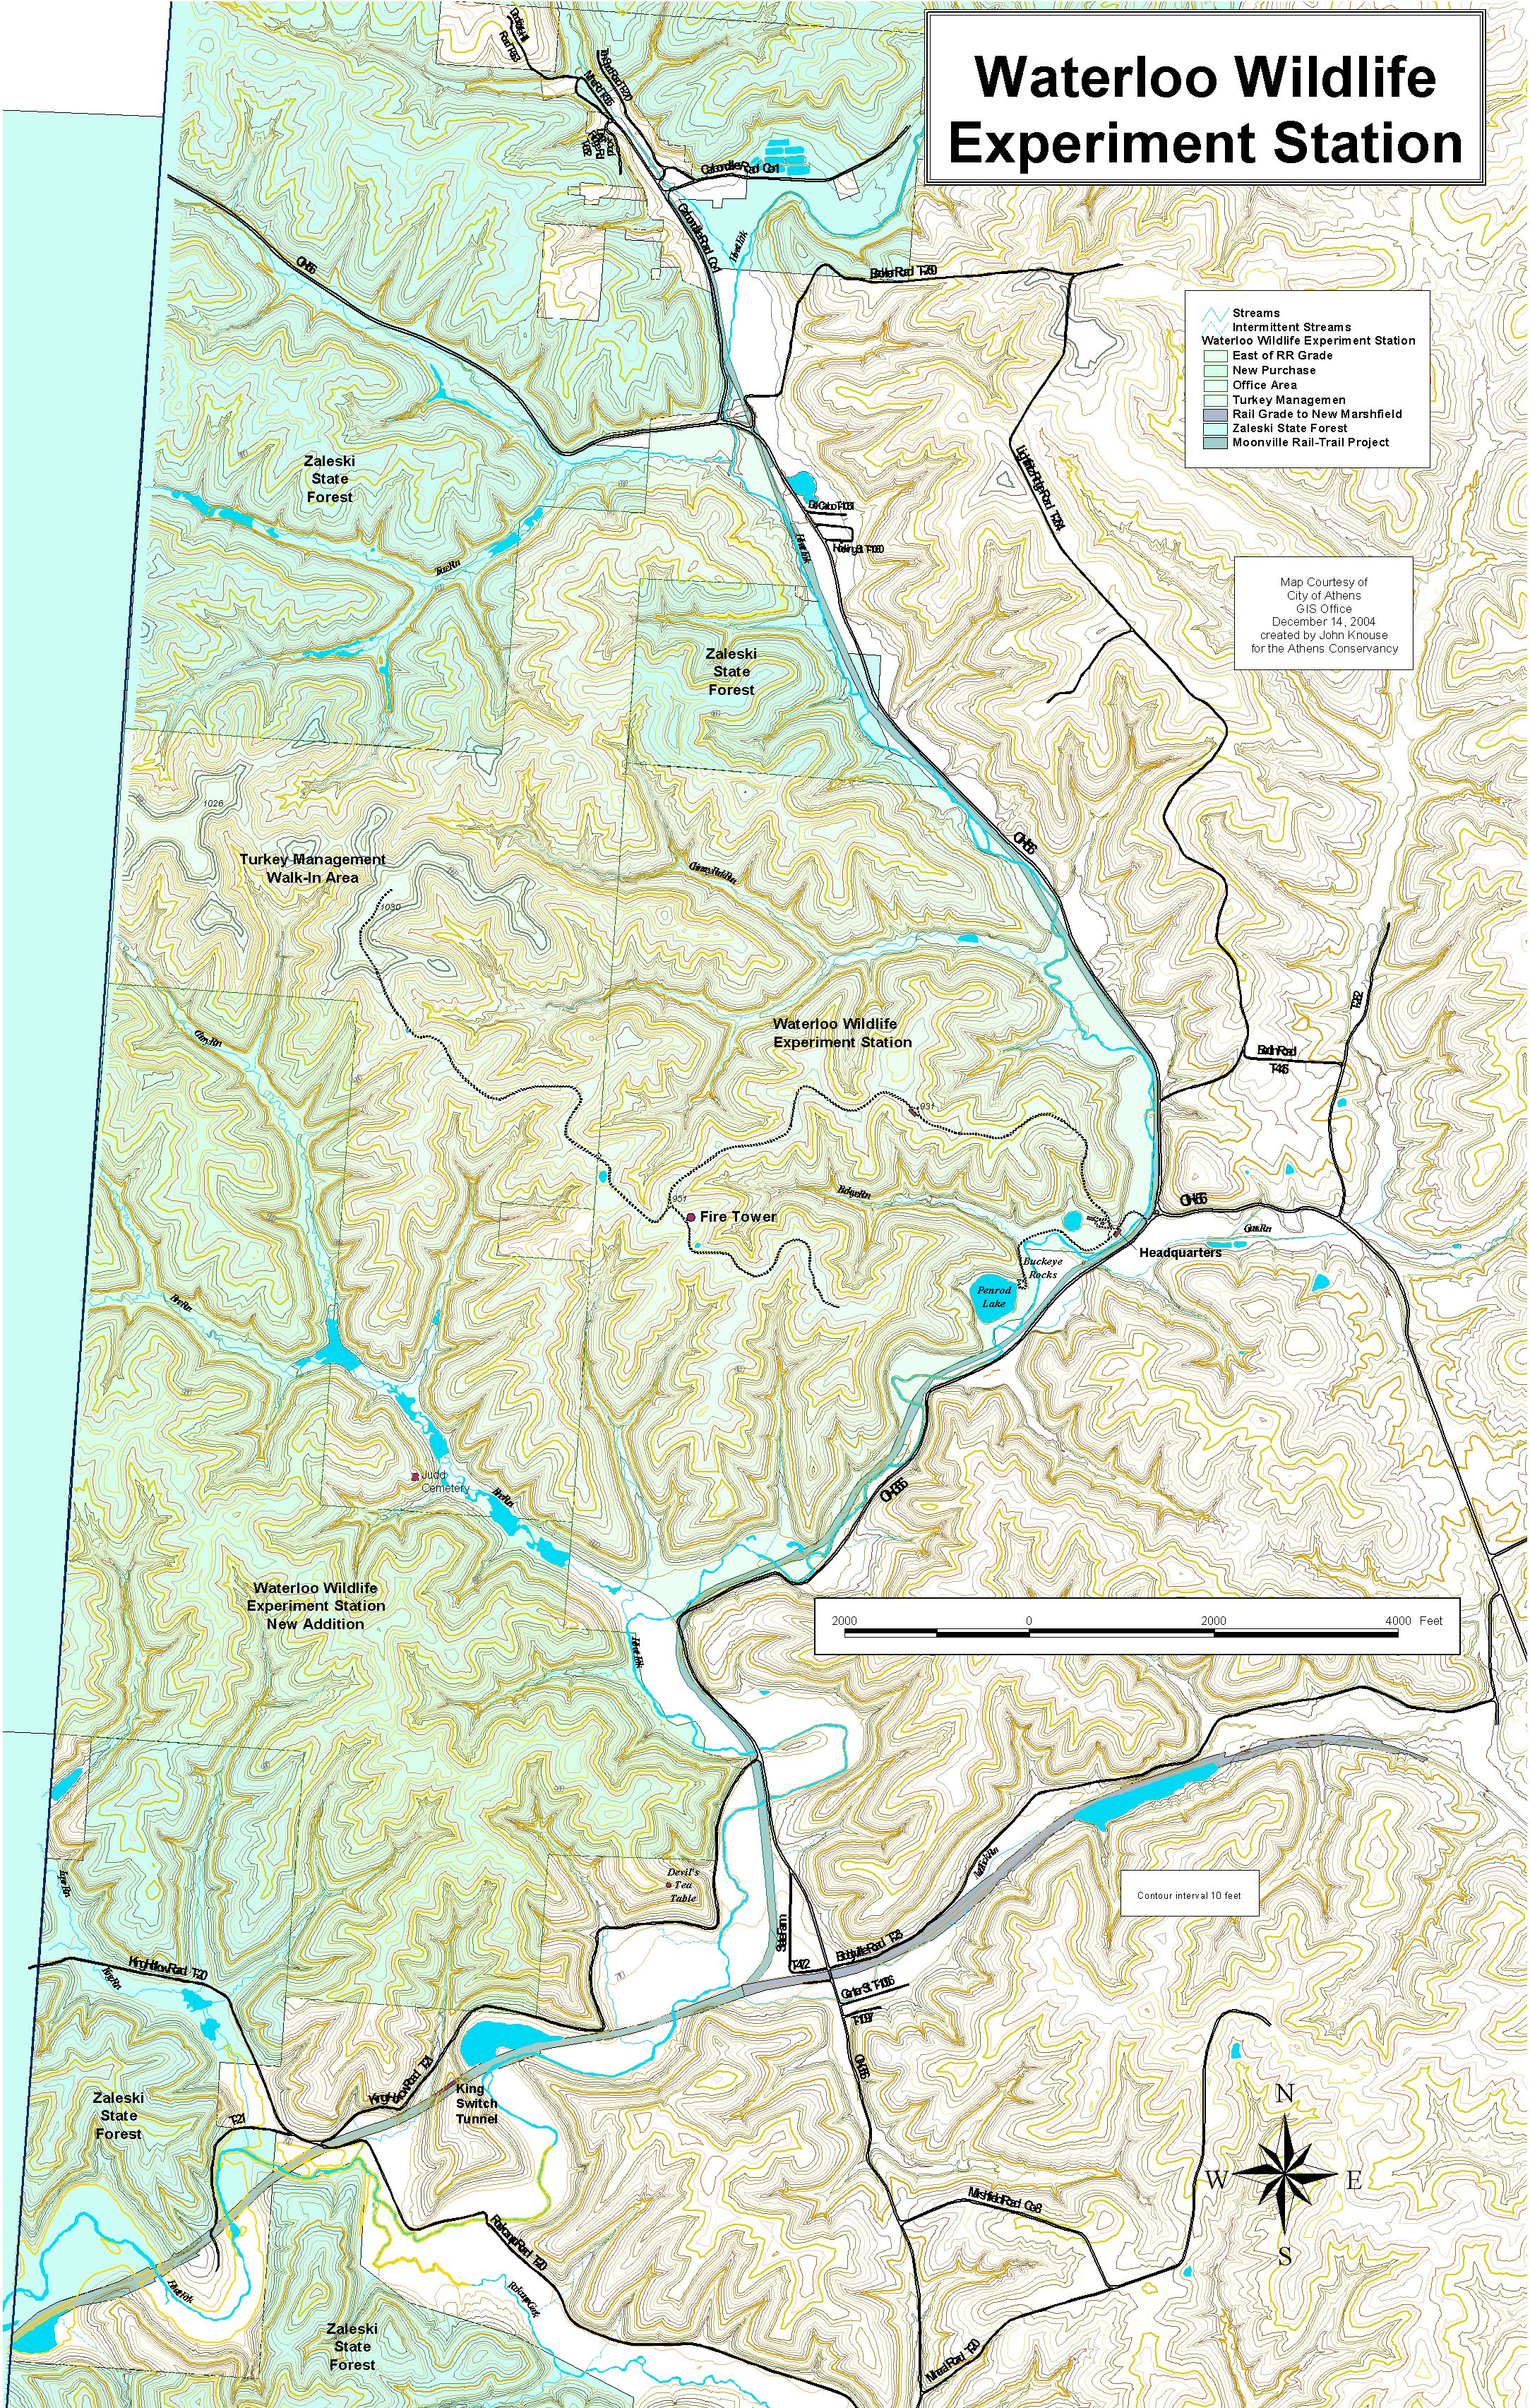 Ohio Regional Map Center: Public Areas and Trails on kettle moraine state forest map, tahuya state forest map, stewart state forest map, capitol state forest map, hocking hills state forest map, dupont state forest map, wharton forest map, pa state forest map, naugatuck state forest trail map, greene-sullivan state forest map, stokes state forest map, shawnee state forest map, prentice cooper state forest map, maumee state forest map, savage river state forest map, mohican state forest map, kanawha state forest map, michaux state forest map, fernwood state forest map,